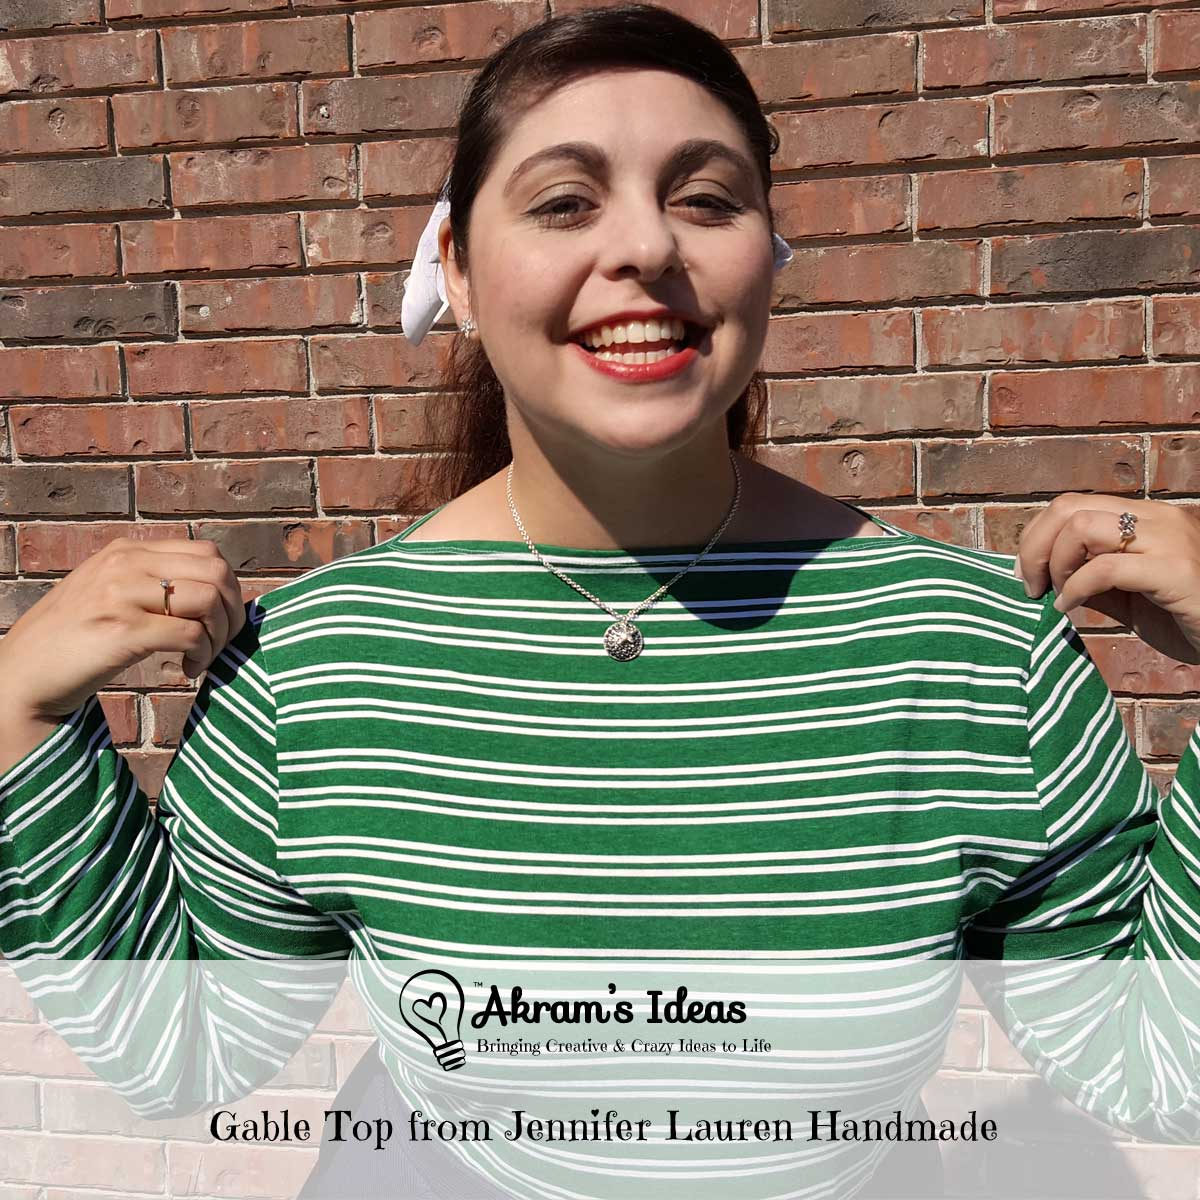 Review of the Gable Top pattern from Jennifer Lauren Handmade, featuring a 50s-inspired true slash neckline, a long-line body and three sleeve options.